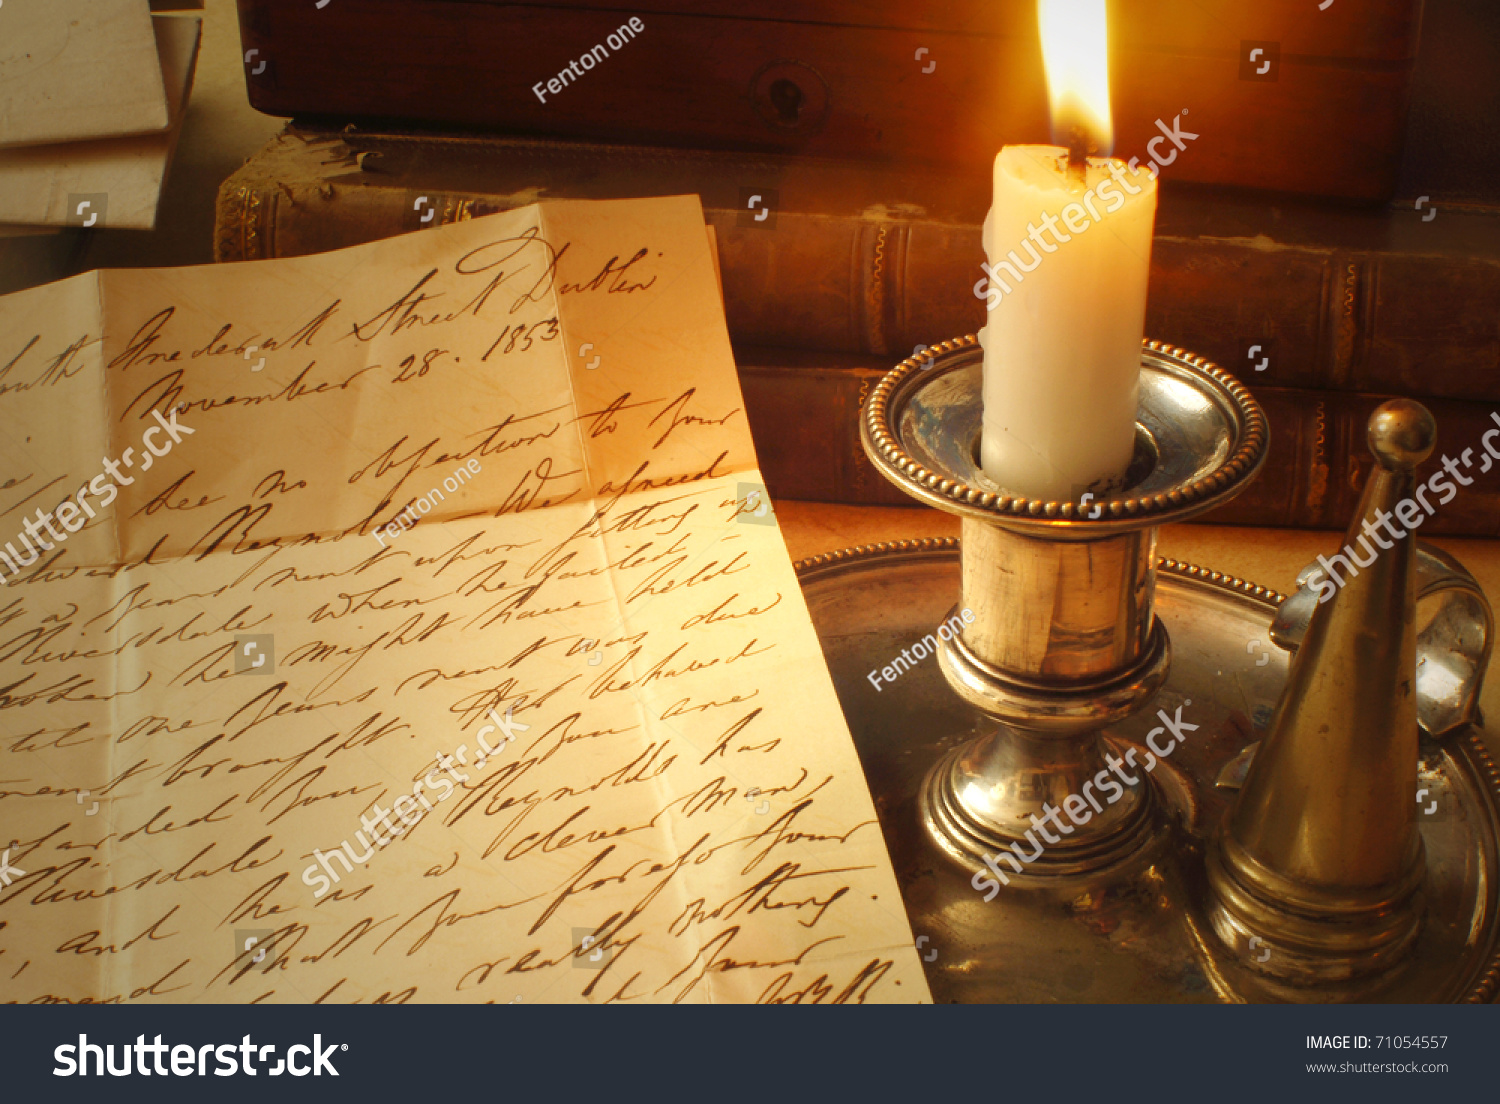 reading a letter by candle light from 1800 39 s stock photo 71054557 shutterstock. Black Bedroom Furniture Sets. Home Design Ideas